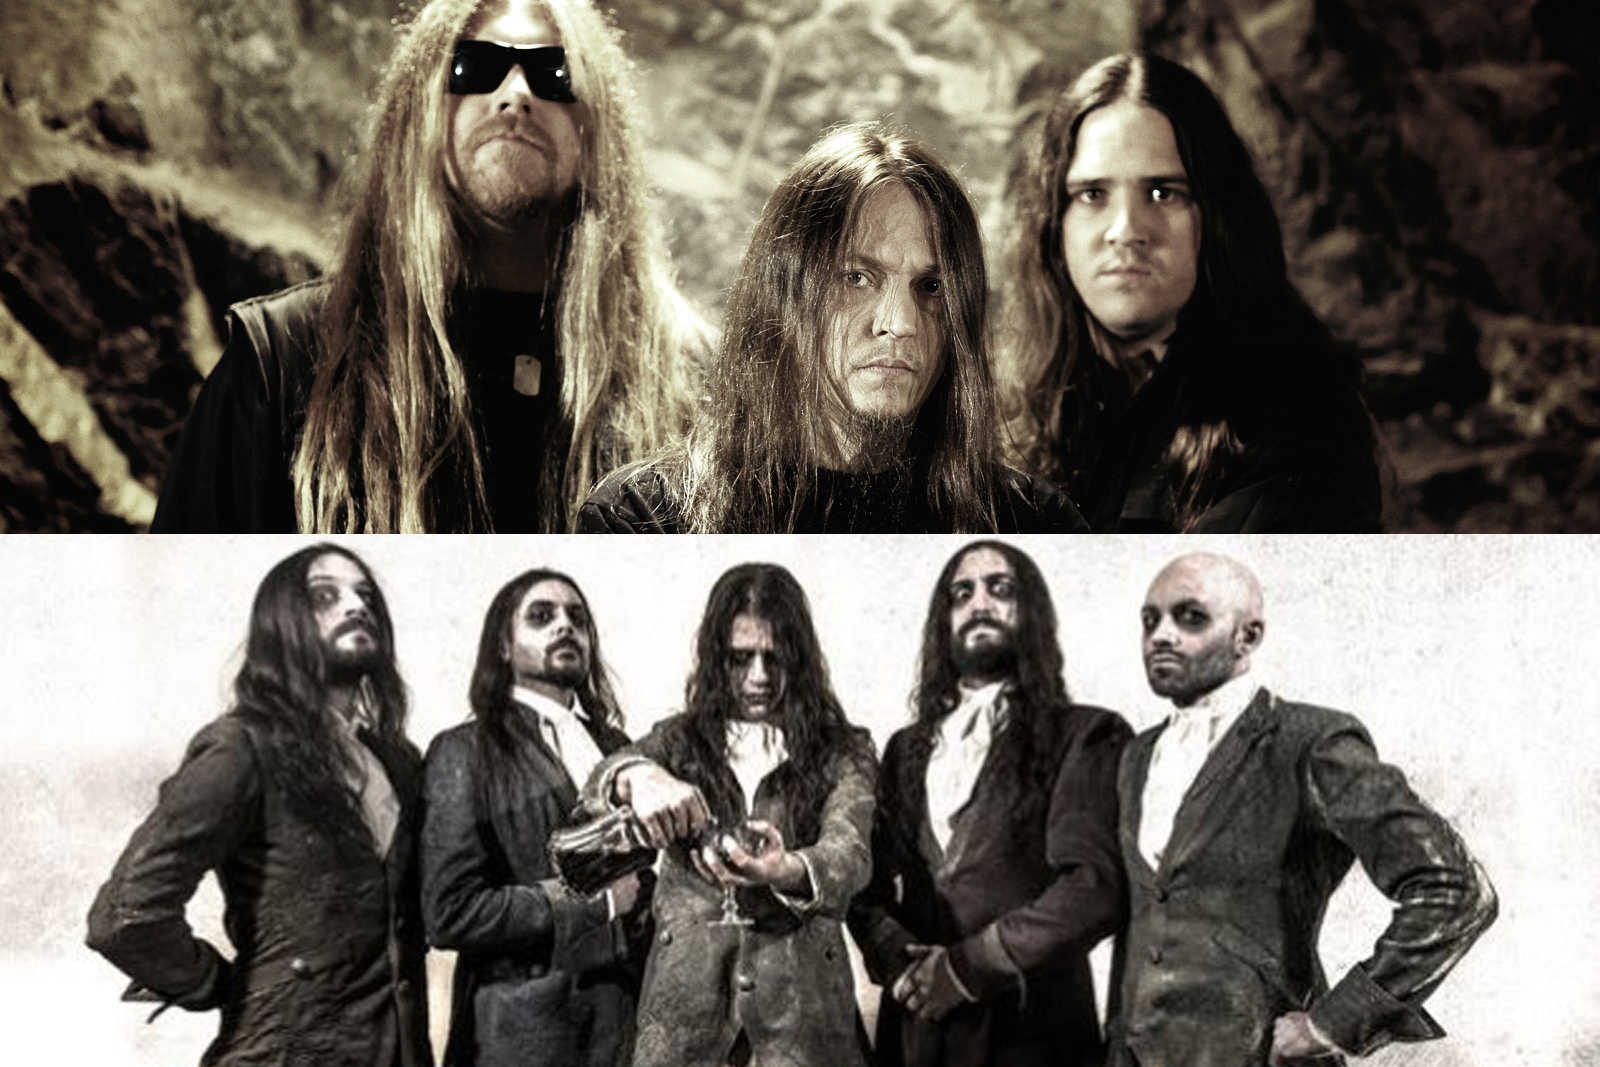 Hypocrisy and Fleshgod Apocalypse, Aenimus, Seeping Beauty